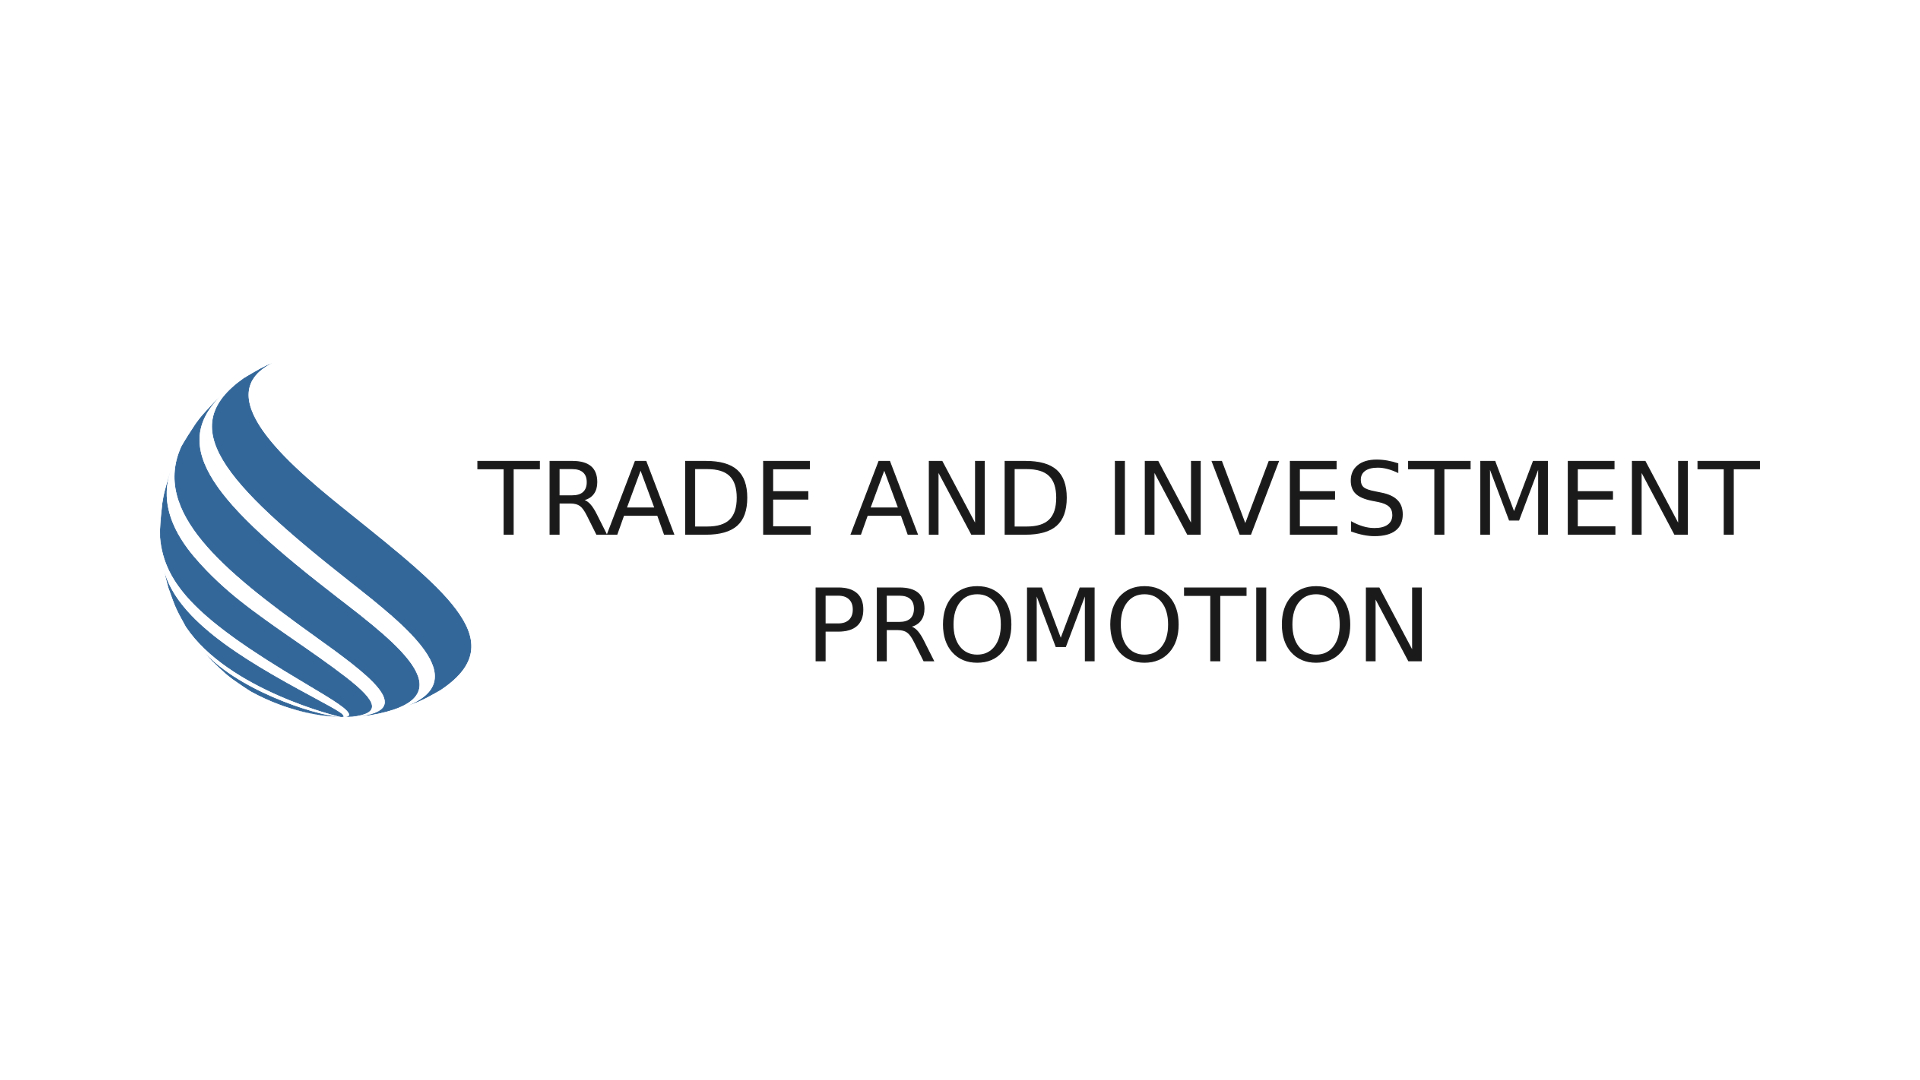 Trade and investment promotion section tobias strubel investments